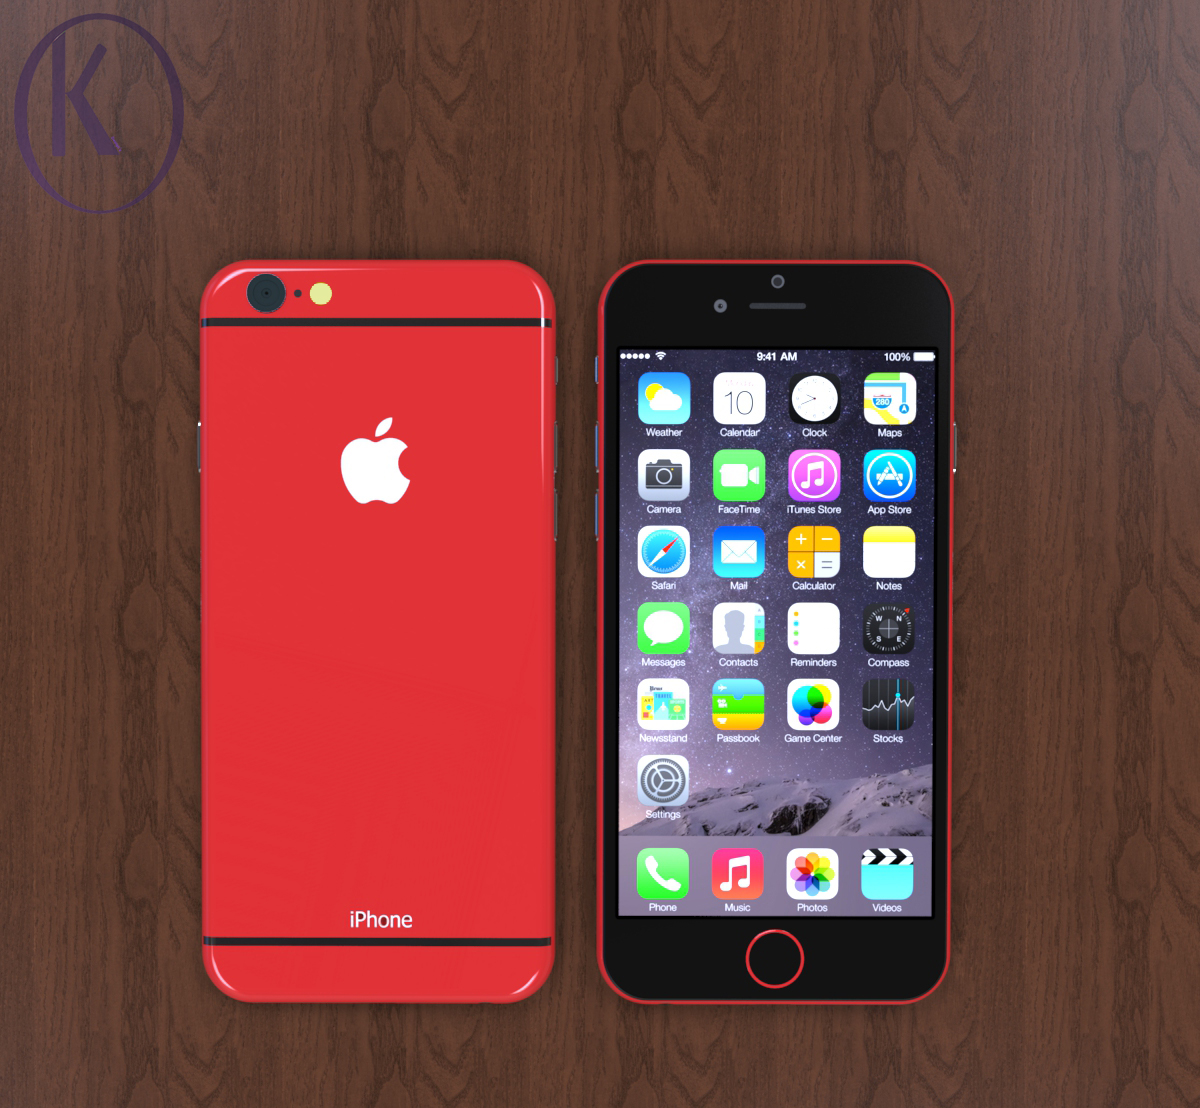 iphone 6c gets new design version from kiarash kia concept phones. Black Bedroom Furniture Sets. Home Design Ideas